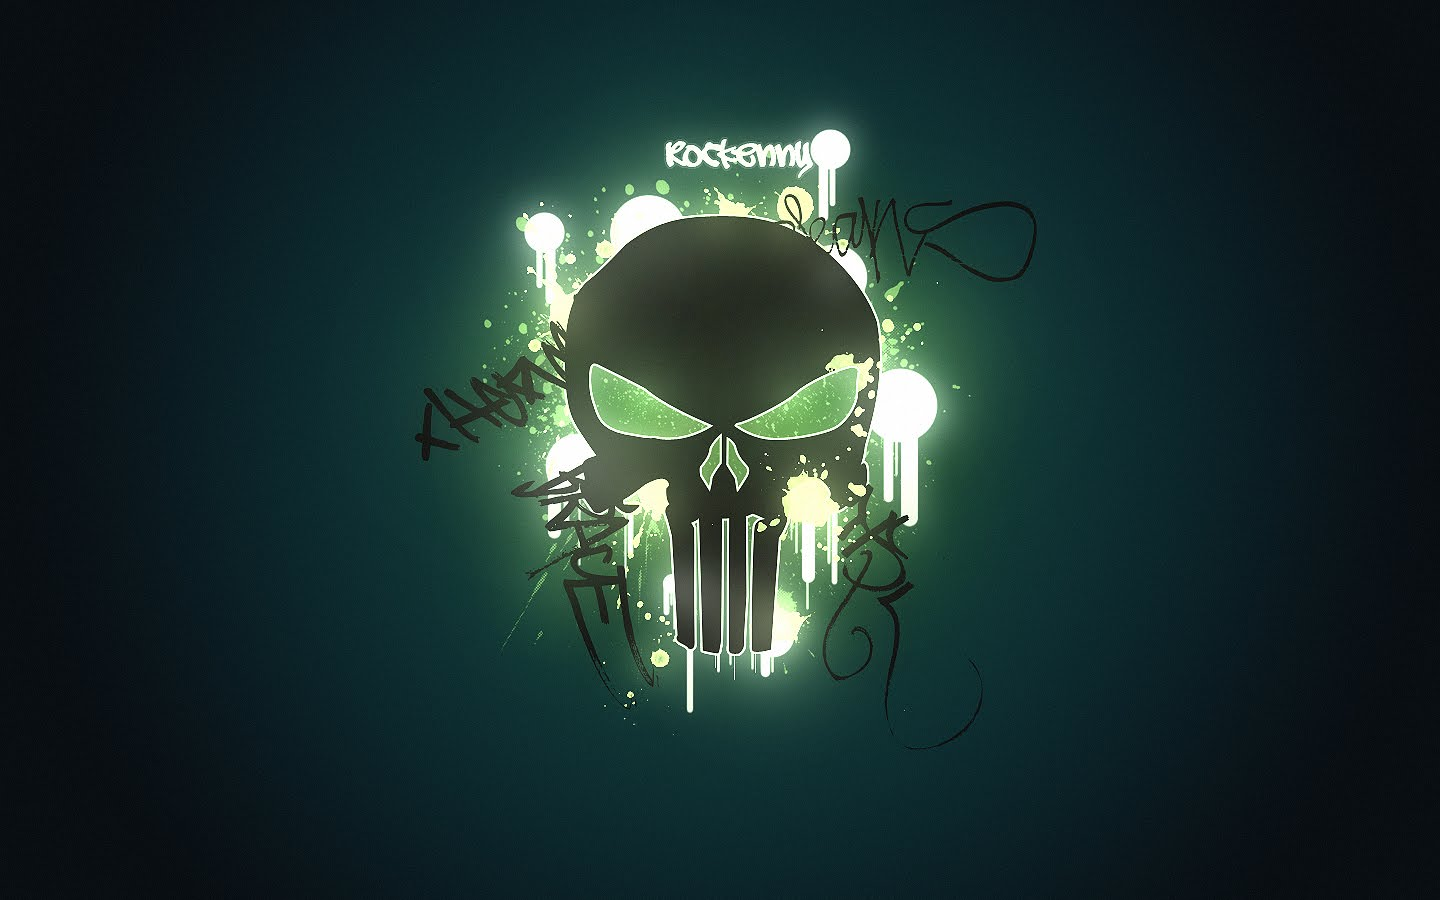 Punisher Skull Wallpaper Clickandseeworld Is All About HD Wallpapers Download Free Images Wallpaper [1000image.com]